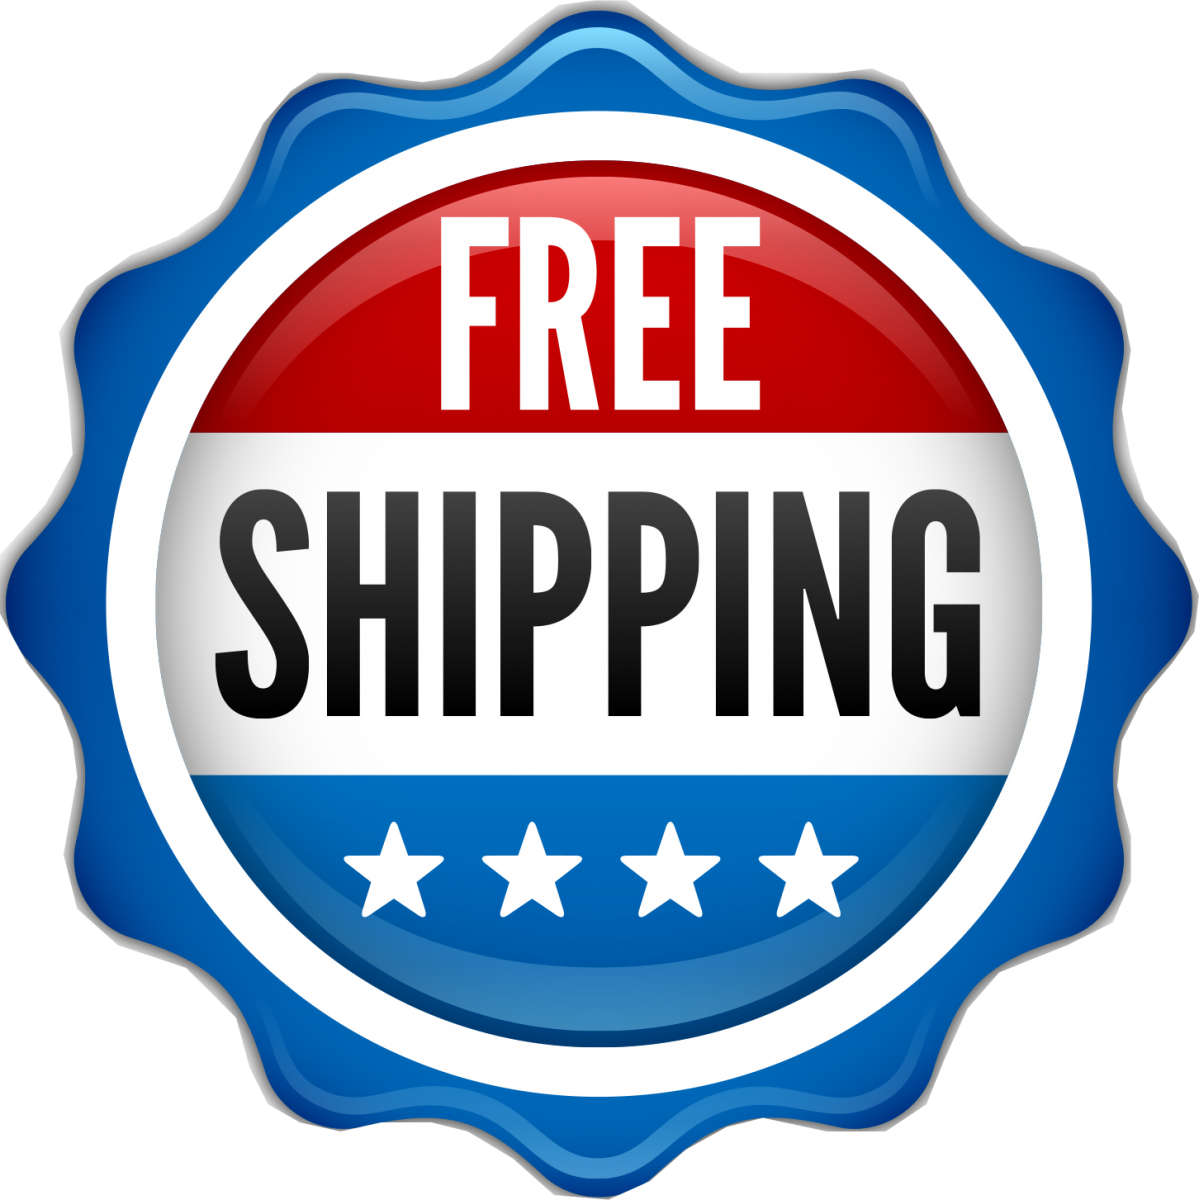 Founder Benefits Free Shipping